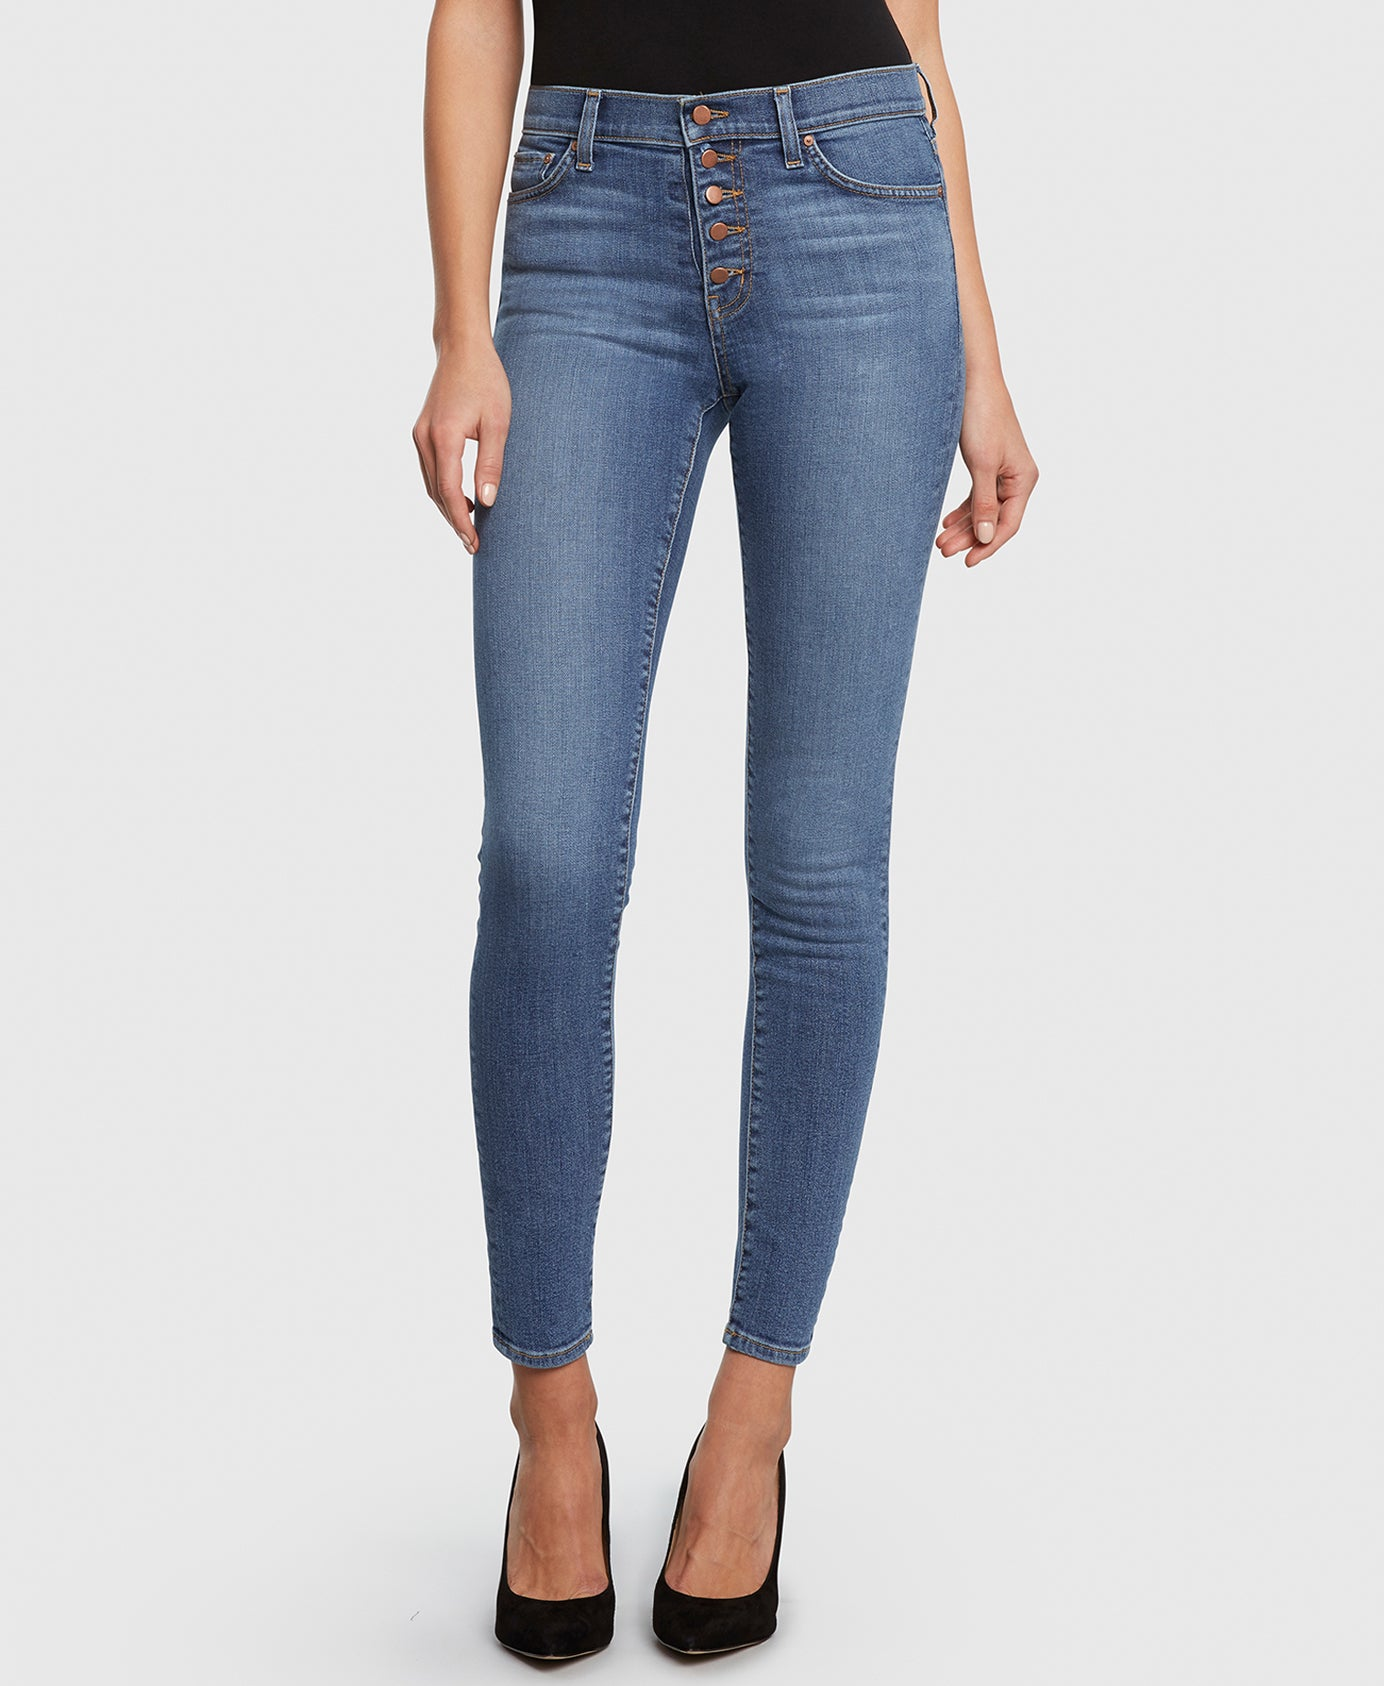 VISION in Hella Good high rise skinny jeans detail